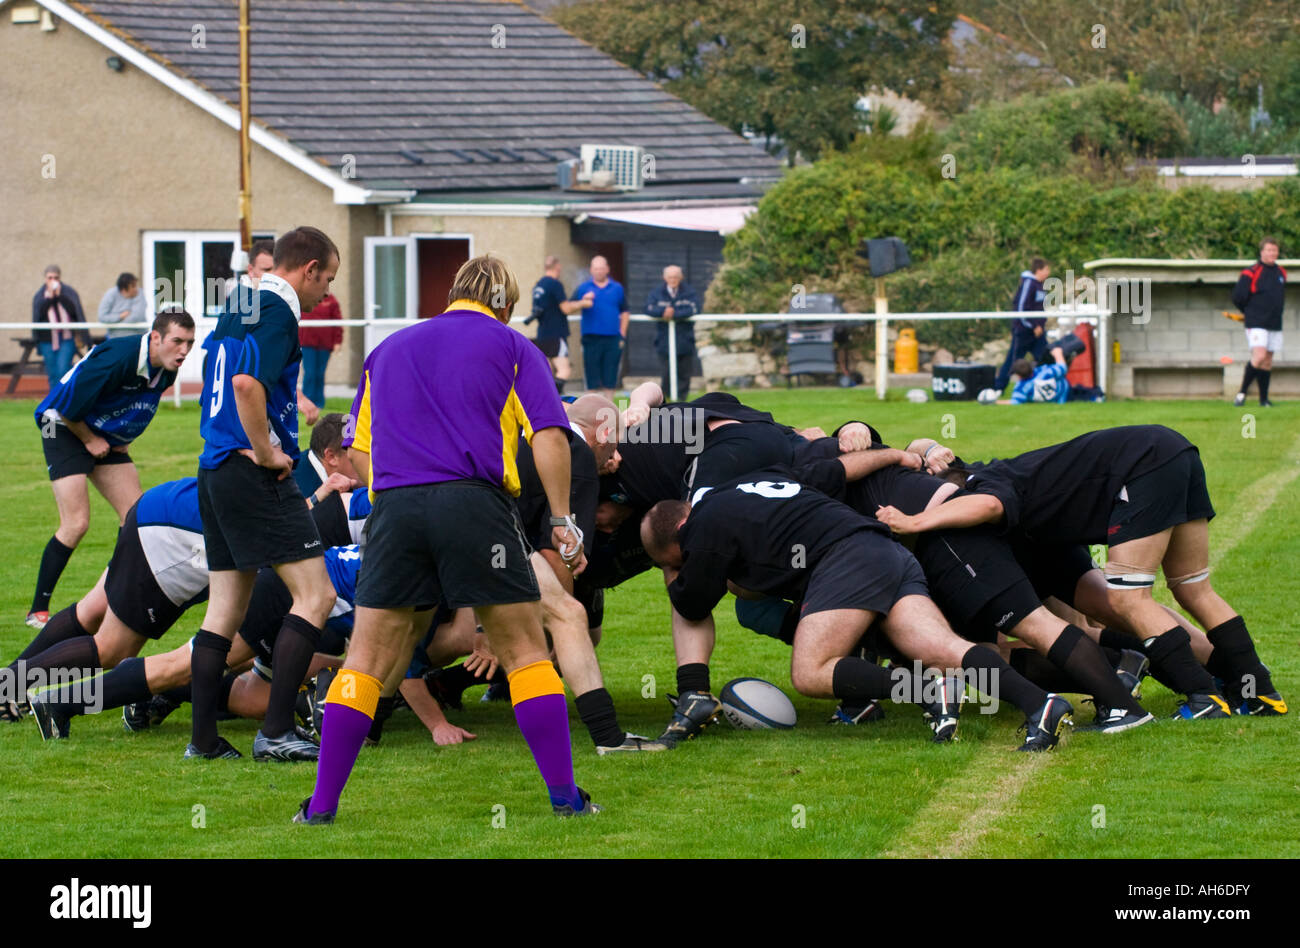 Two local Cornish rugby teams contest a Scrum during a Cornwall 1 League Match - Stock Image